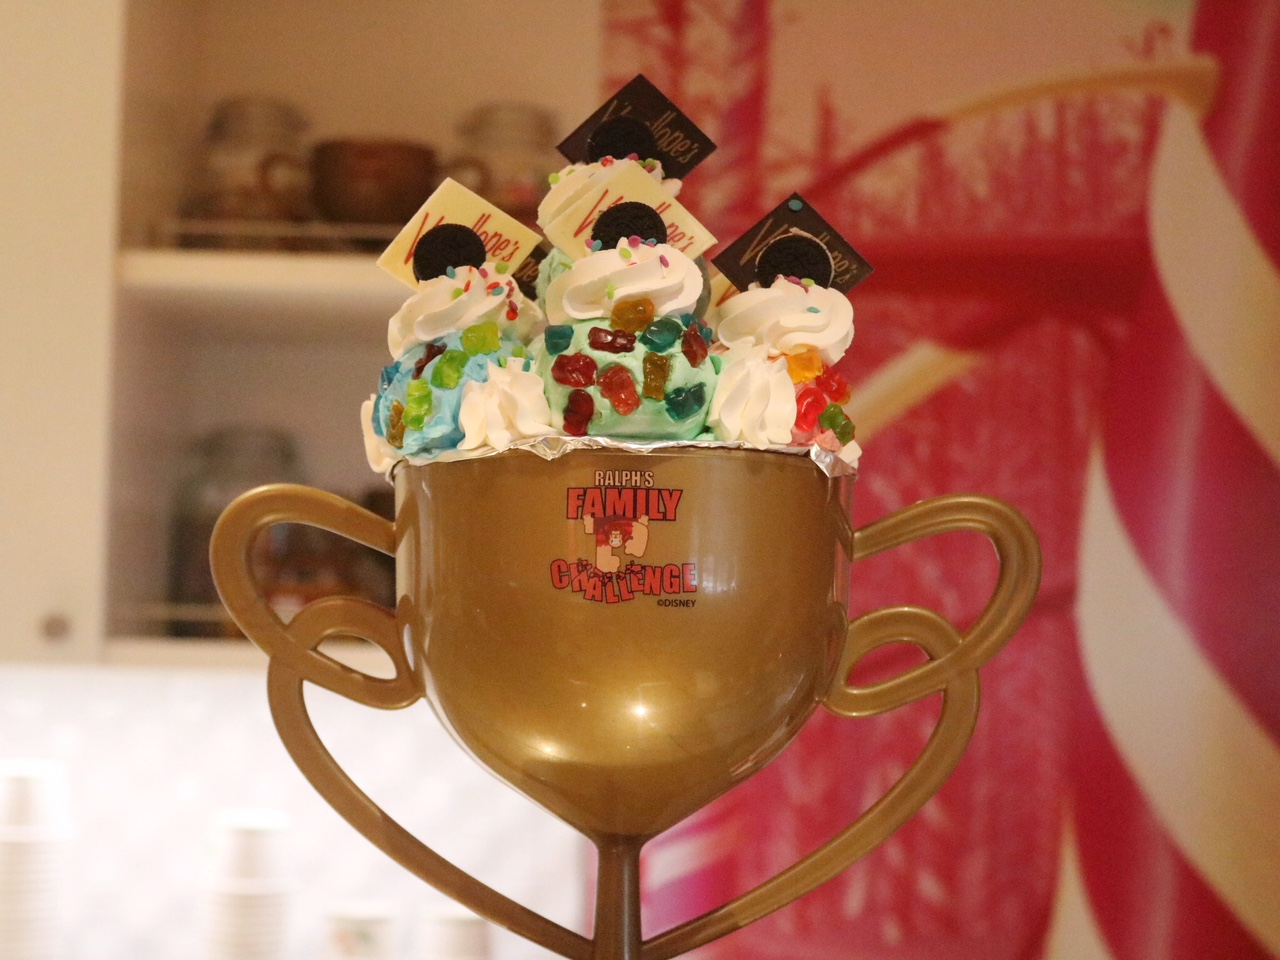 Vanellope's Sweets and Treats Ralph's Family Challenge